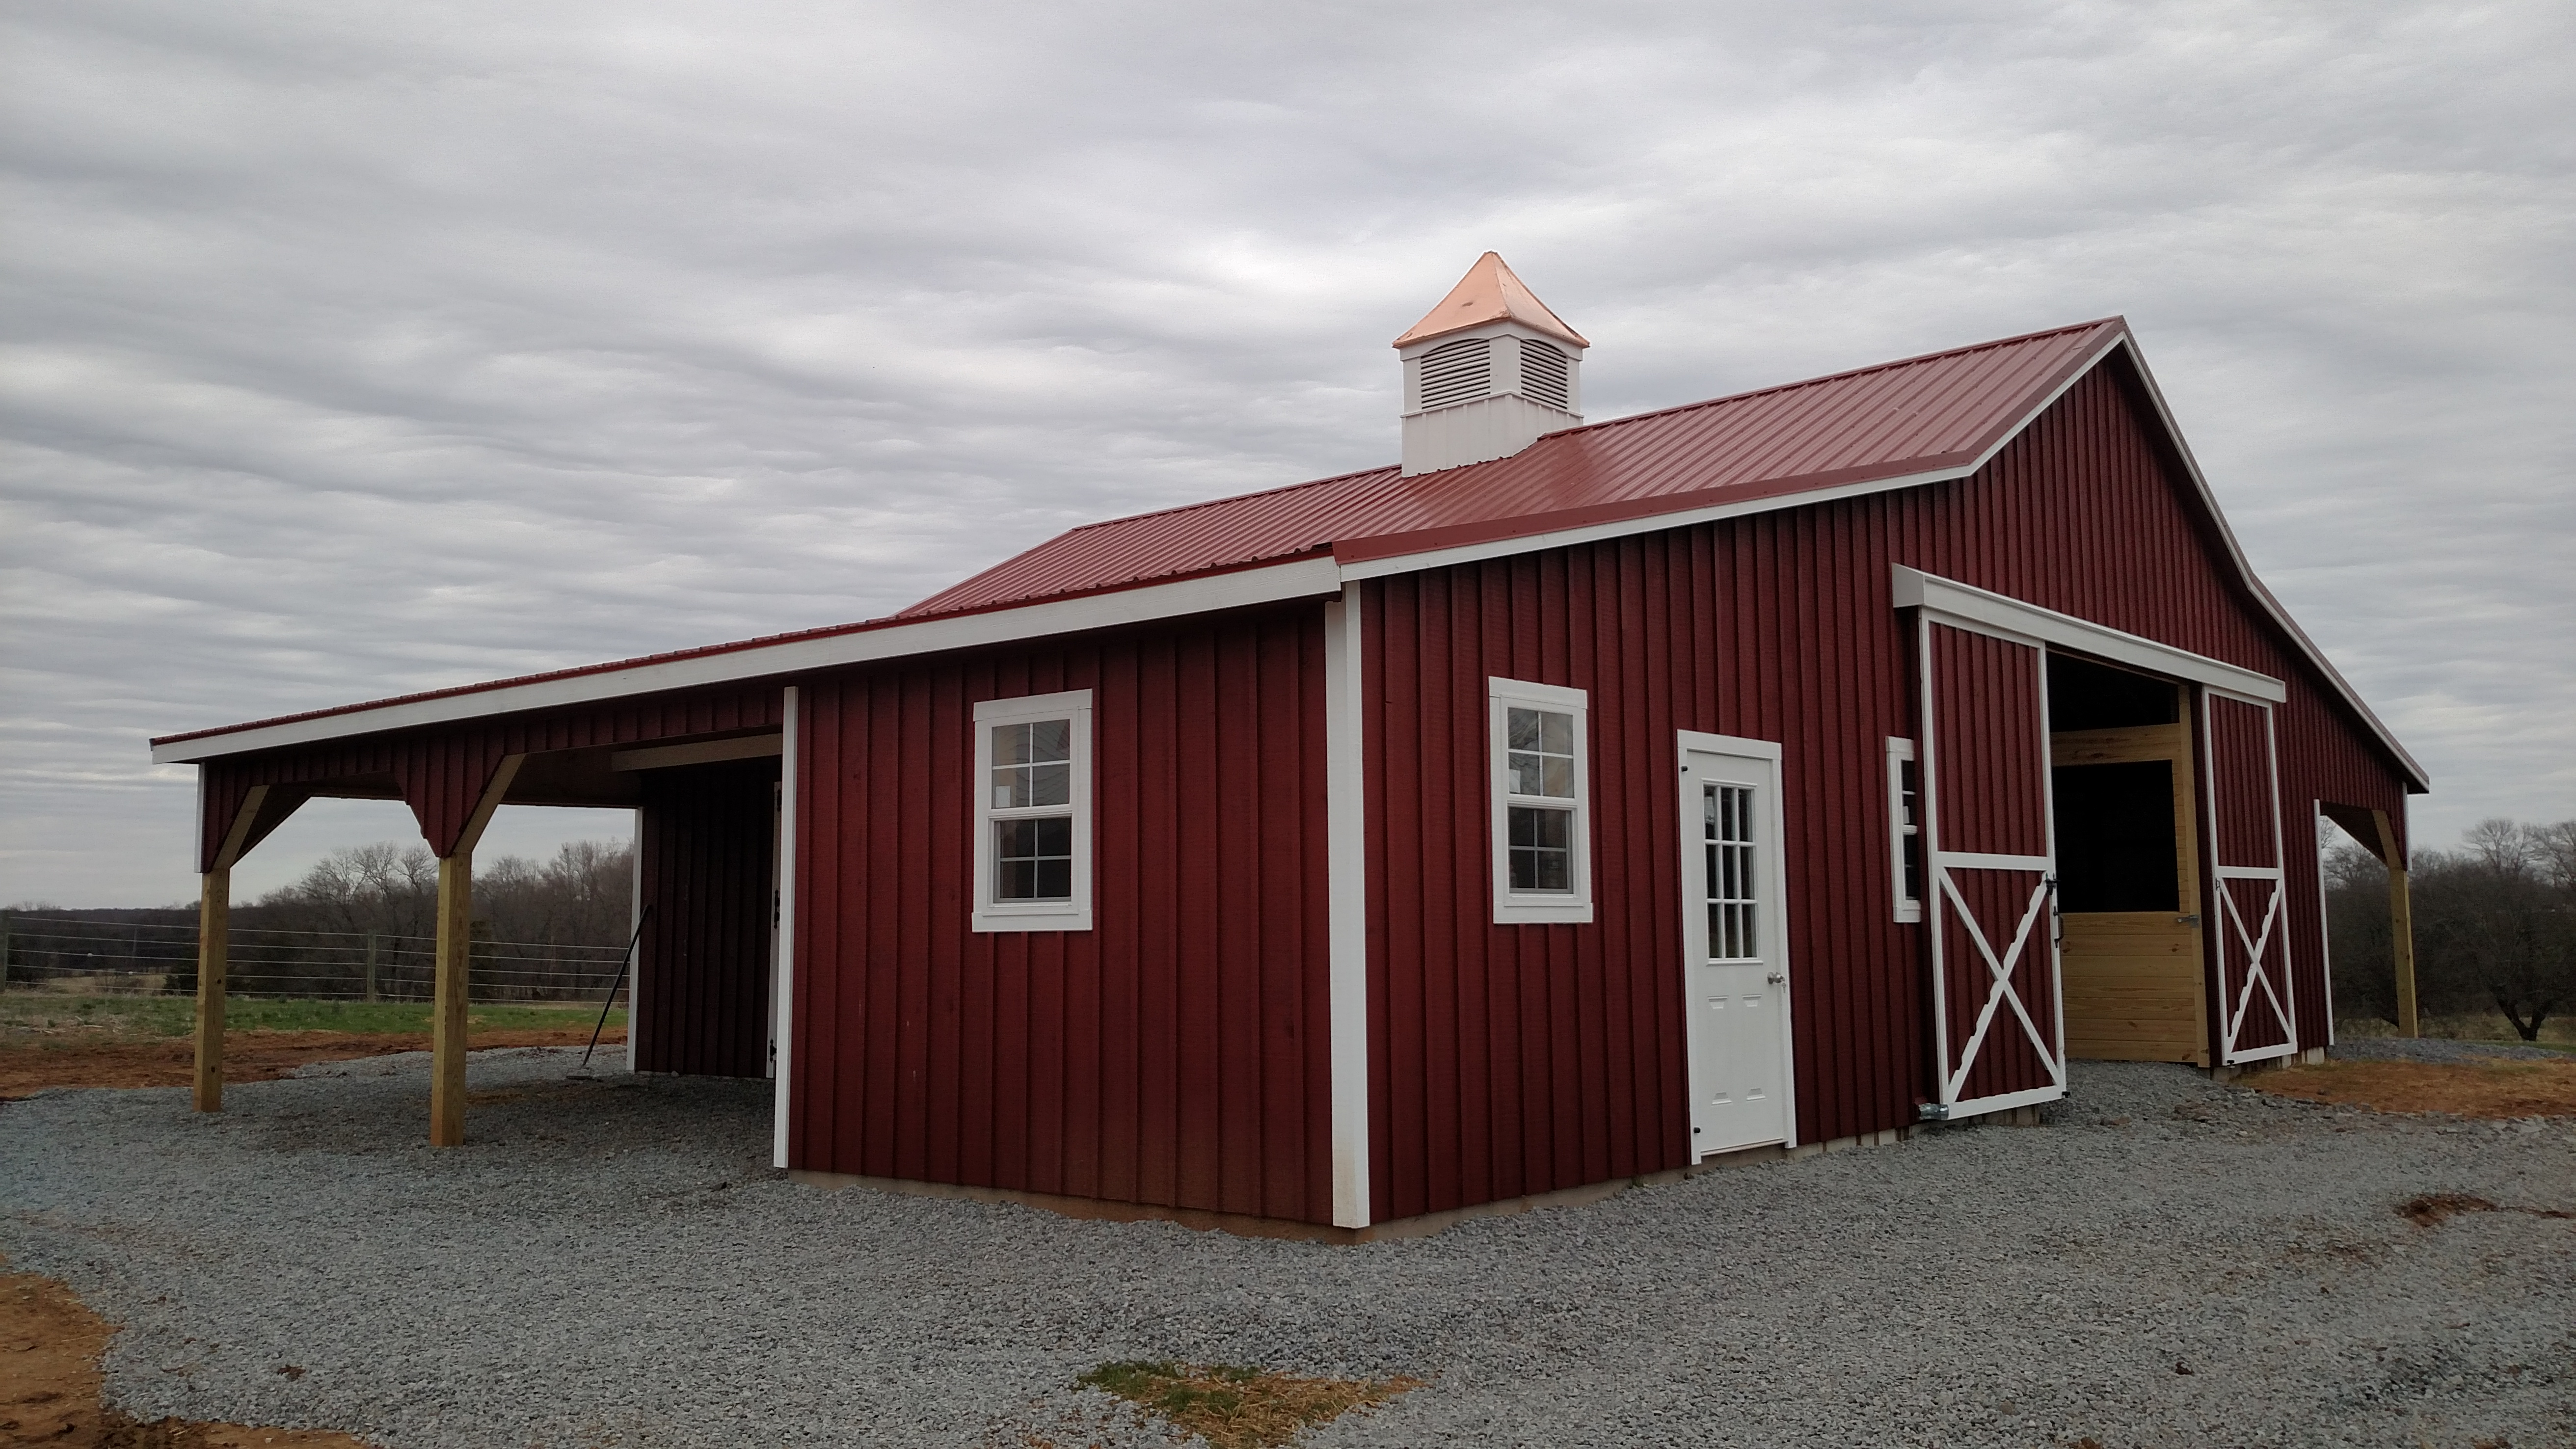 This barn has 5 stalls with 10' open lean to's on each side for extra weather protection for horses. The tack room is extended out into the lean to creating a spacious 12x22 tack room.